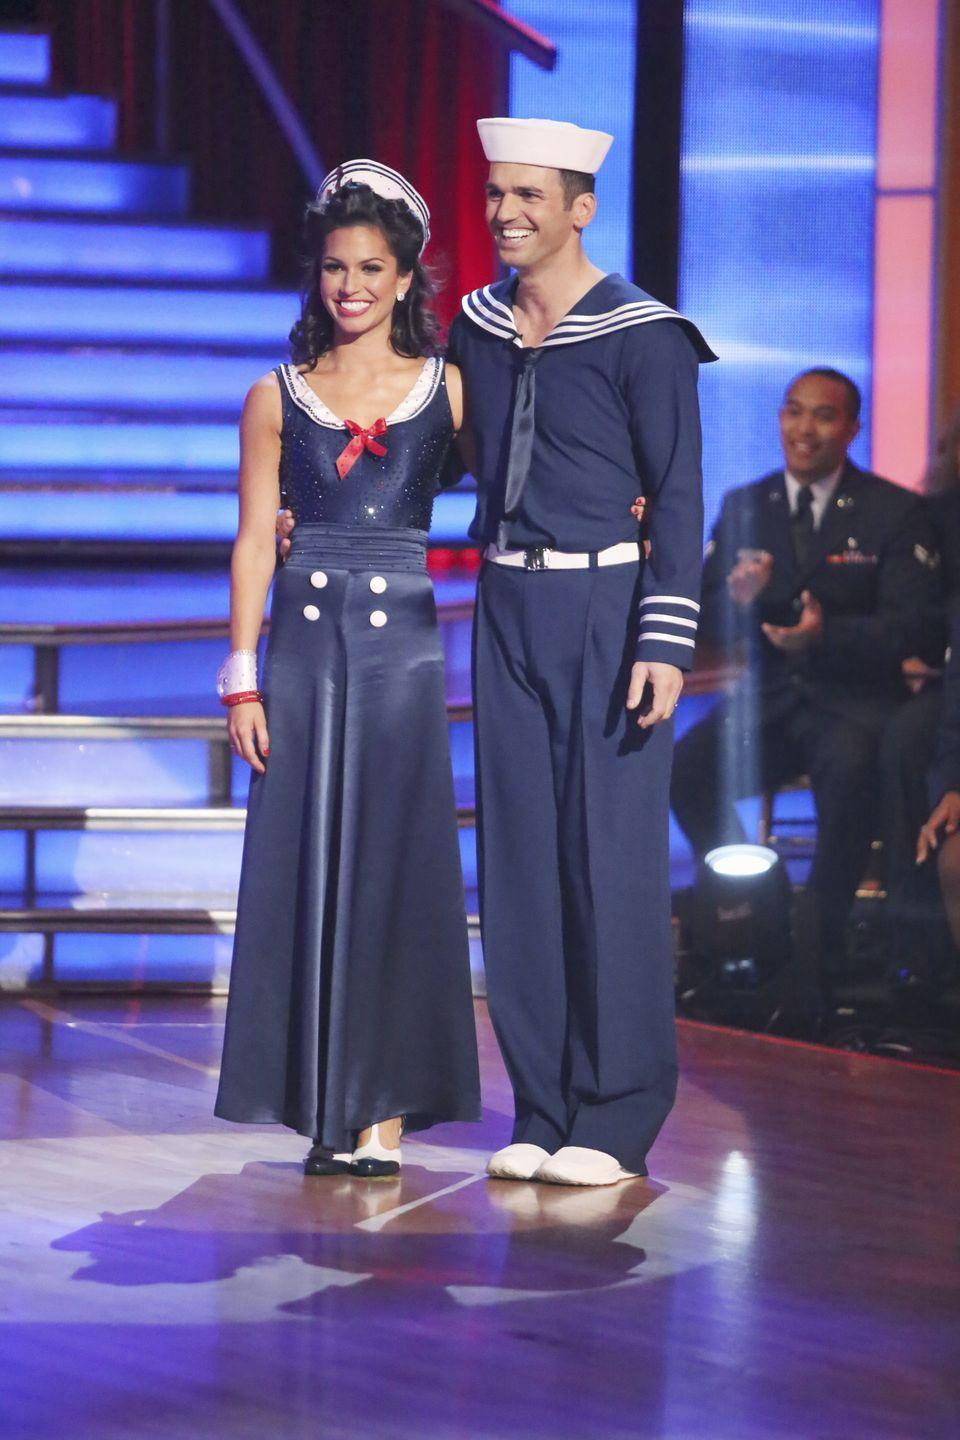 "<p>While rehearsing a group number for the show, the former <em>Bachelorette</em> injured her spine and was taken to the hospital. ""Melissa was diagnosed with a disc herniation at the C4-C5 level of her cervical spine,"" her rep told <em><a href=""http://people.com/tv/dancing-with-the-stars-melissa-rycroft-injured-rehearsal-footage/"" rel=""nofollow noopener"" target=""_blank"" data-ylk=""slk:People"" class=""link rapid-noclick-resp"">People</a></em>. Her injury sounded severe, but she went on to win the all-star season 15. </p>"